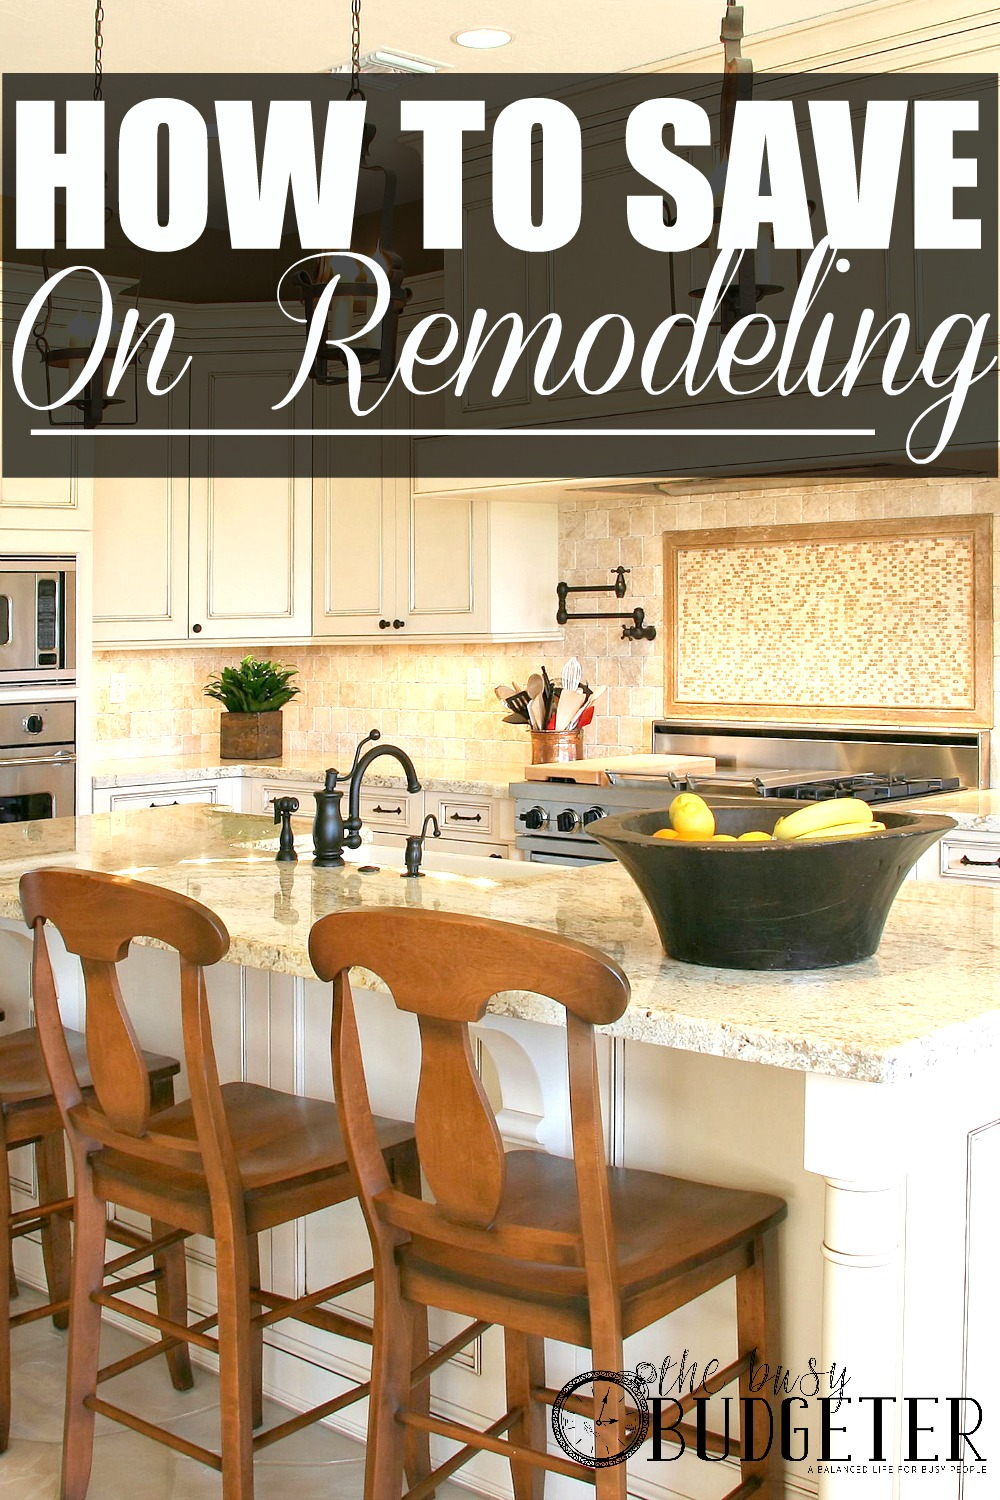 How to Save on Remodeling. We just got estimates on a kitchen remodel and I almost choked. These are great ideas! I called around to find contractors that would let us source our own supplies and we saved 14% (almost $3,000!). This was a great read at perfect timing.